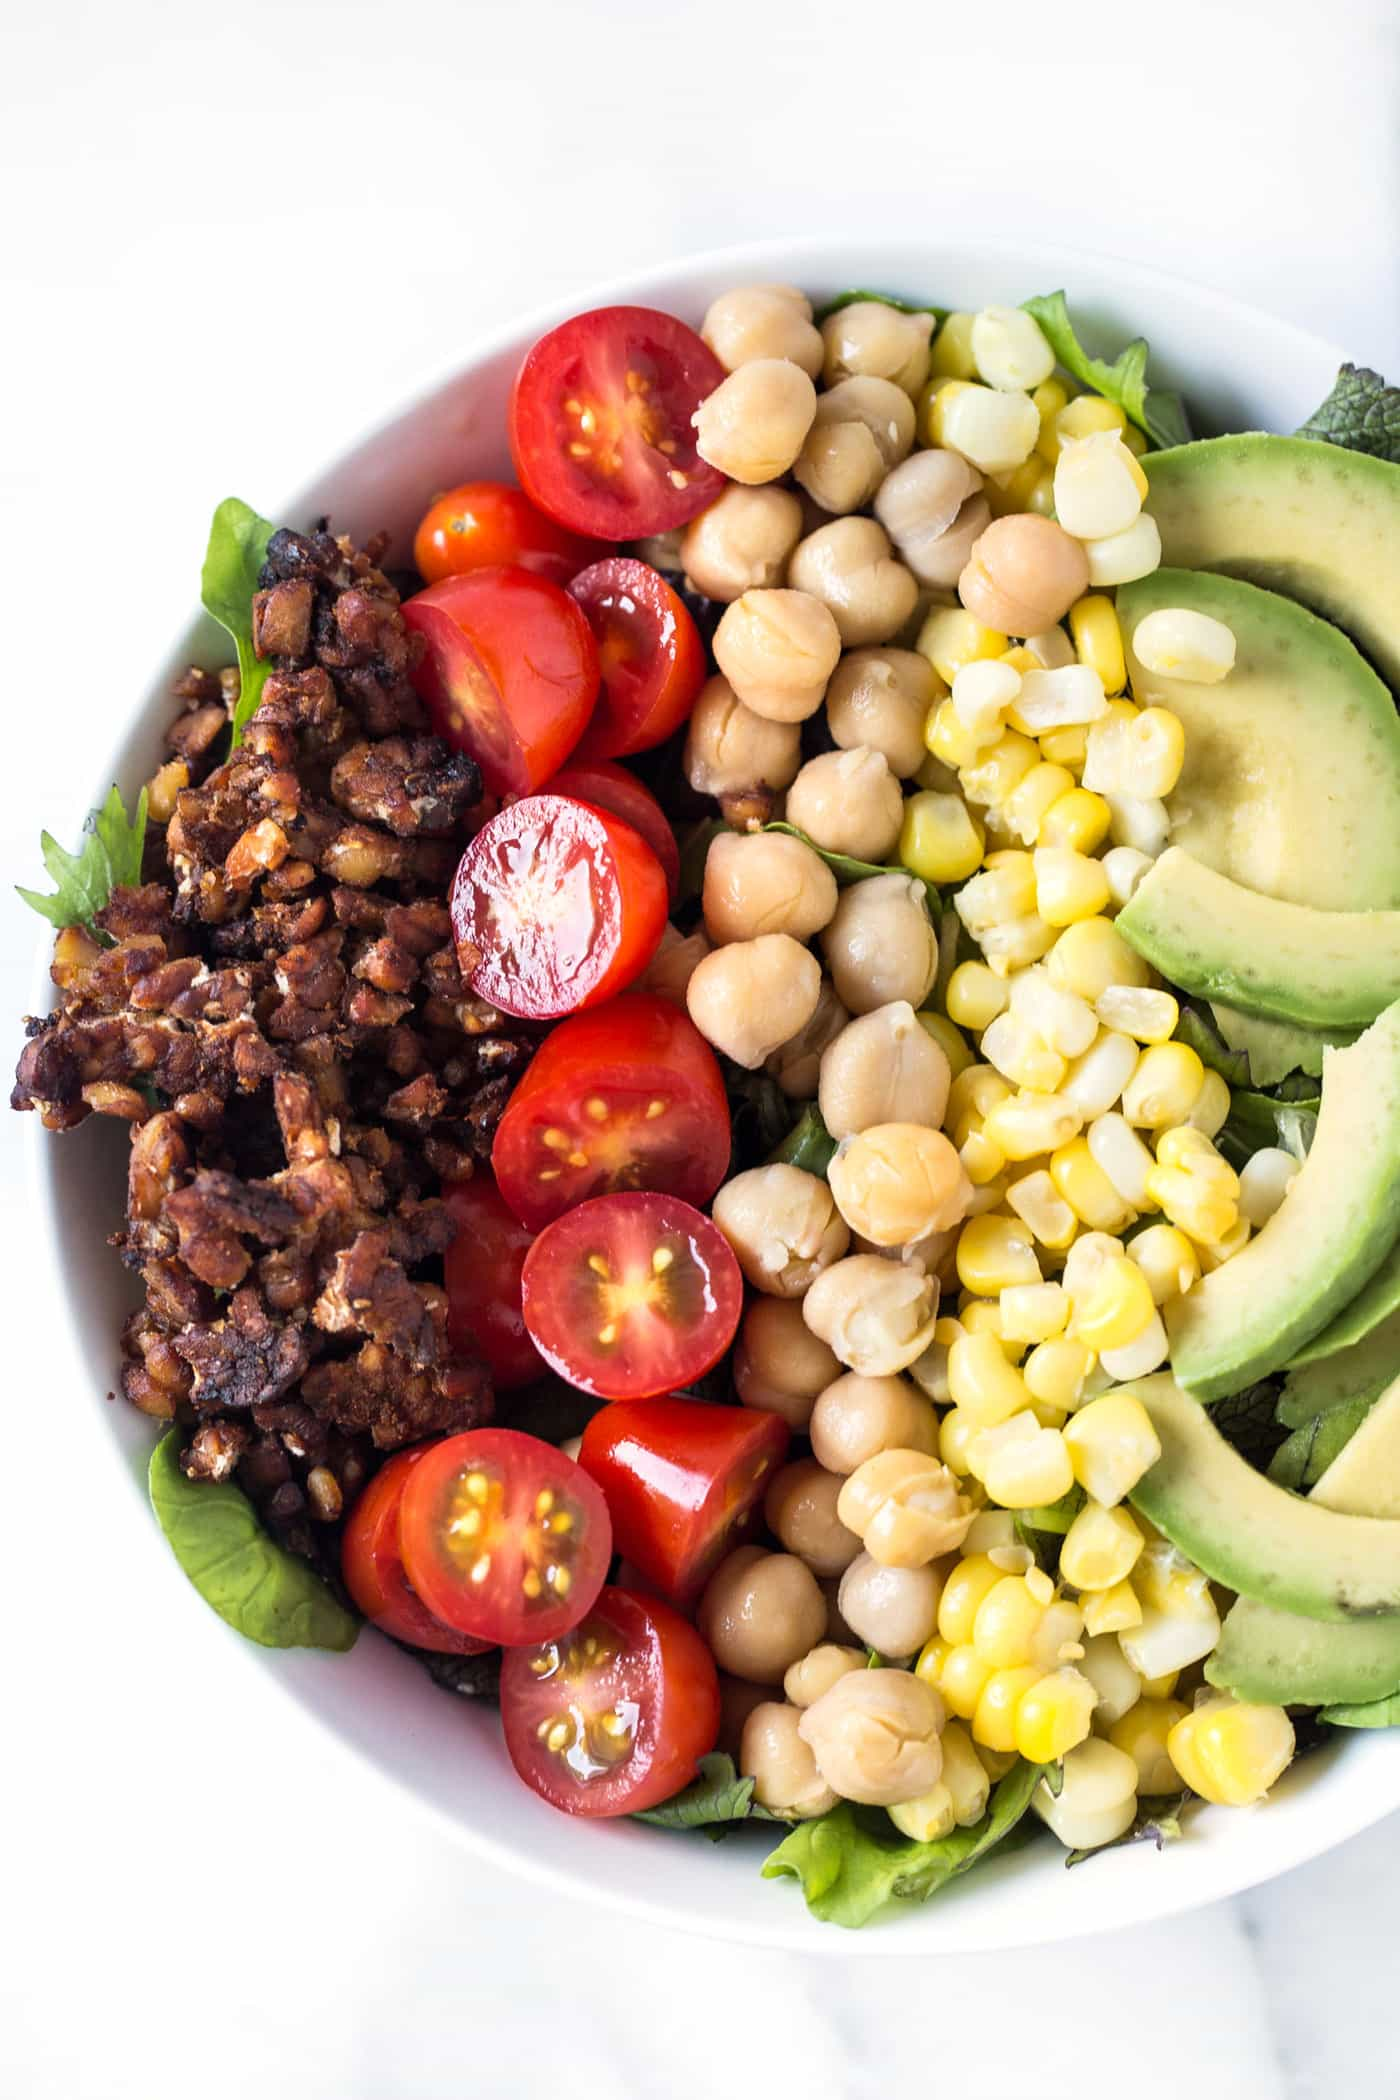 This super SIMPLE vegan cobb salad is packed with protein, but doesn't have any meat OR dairy!